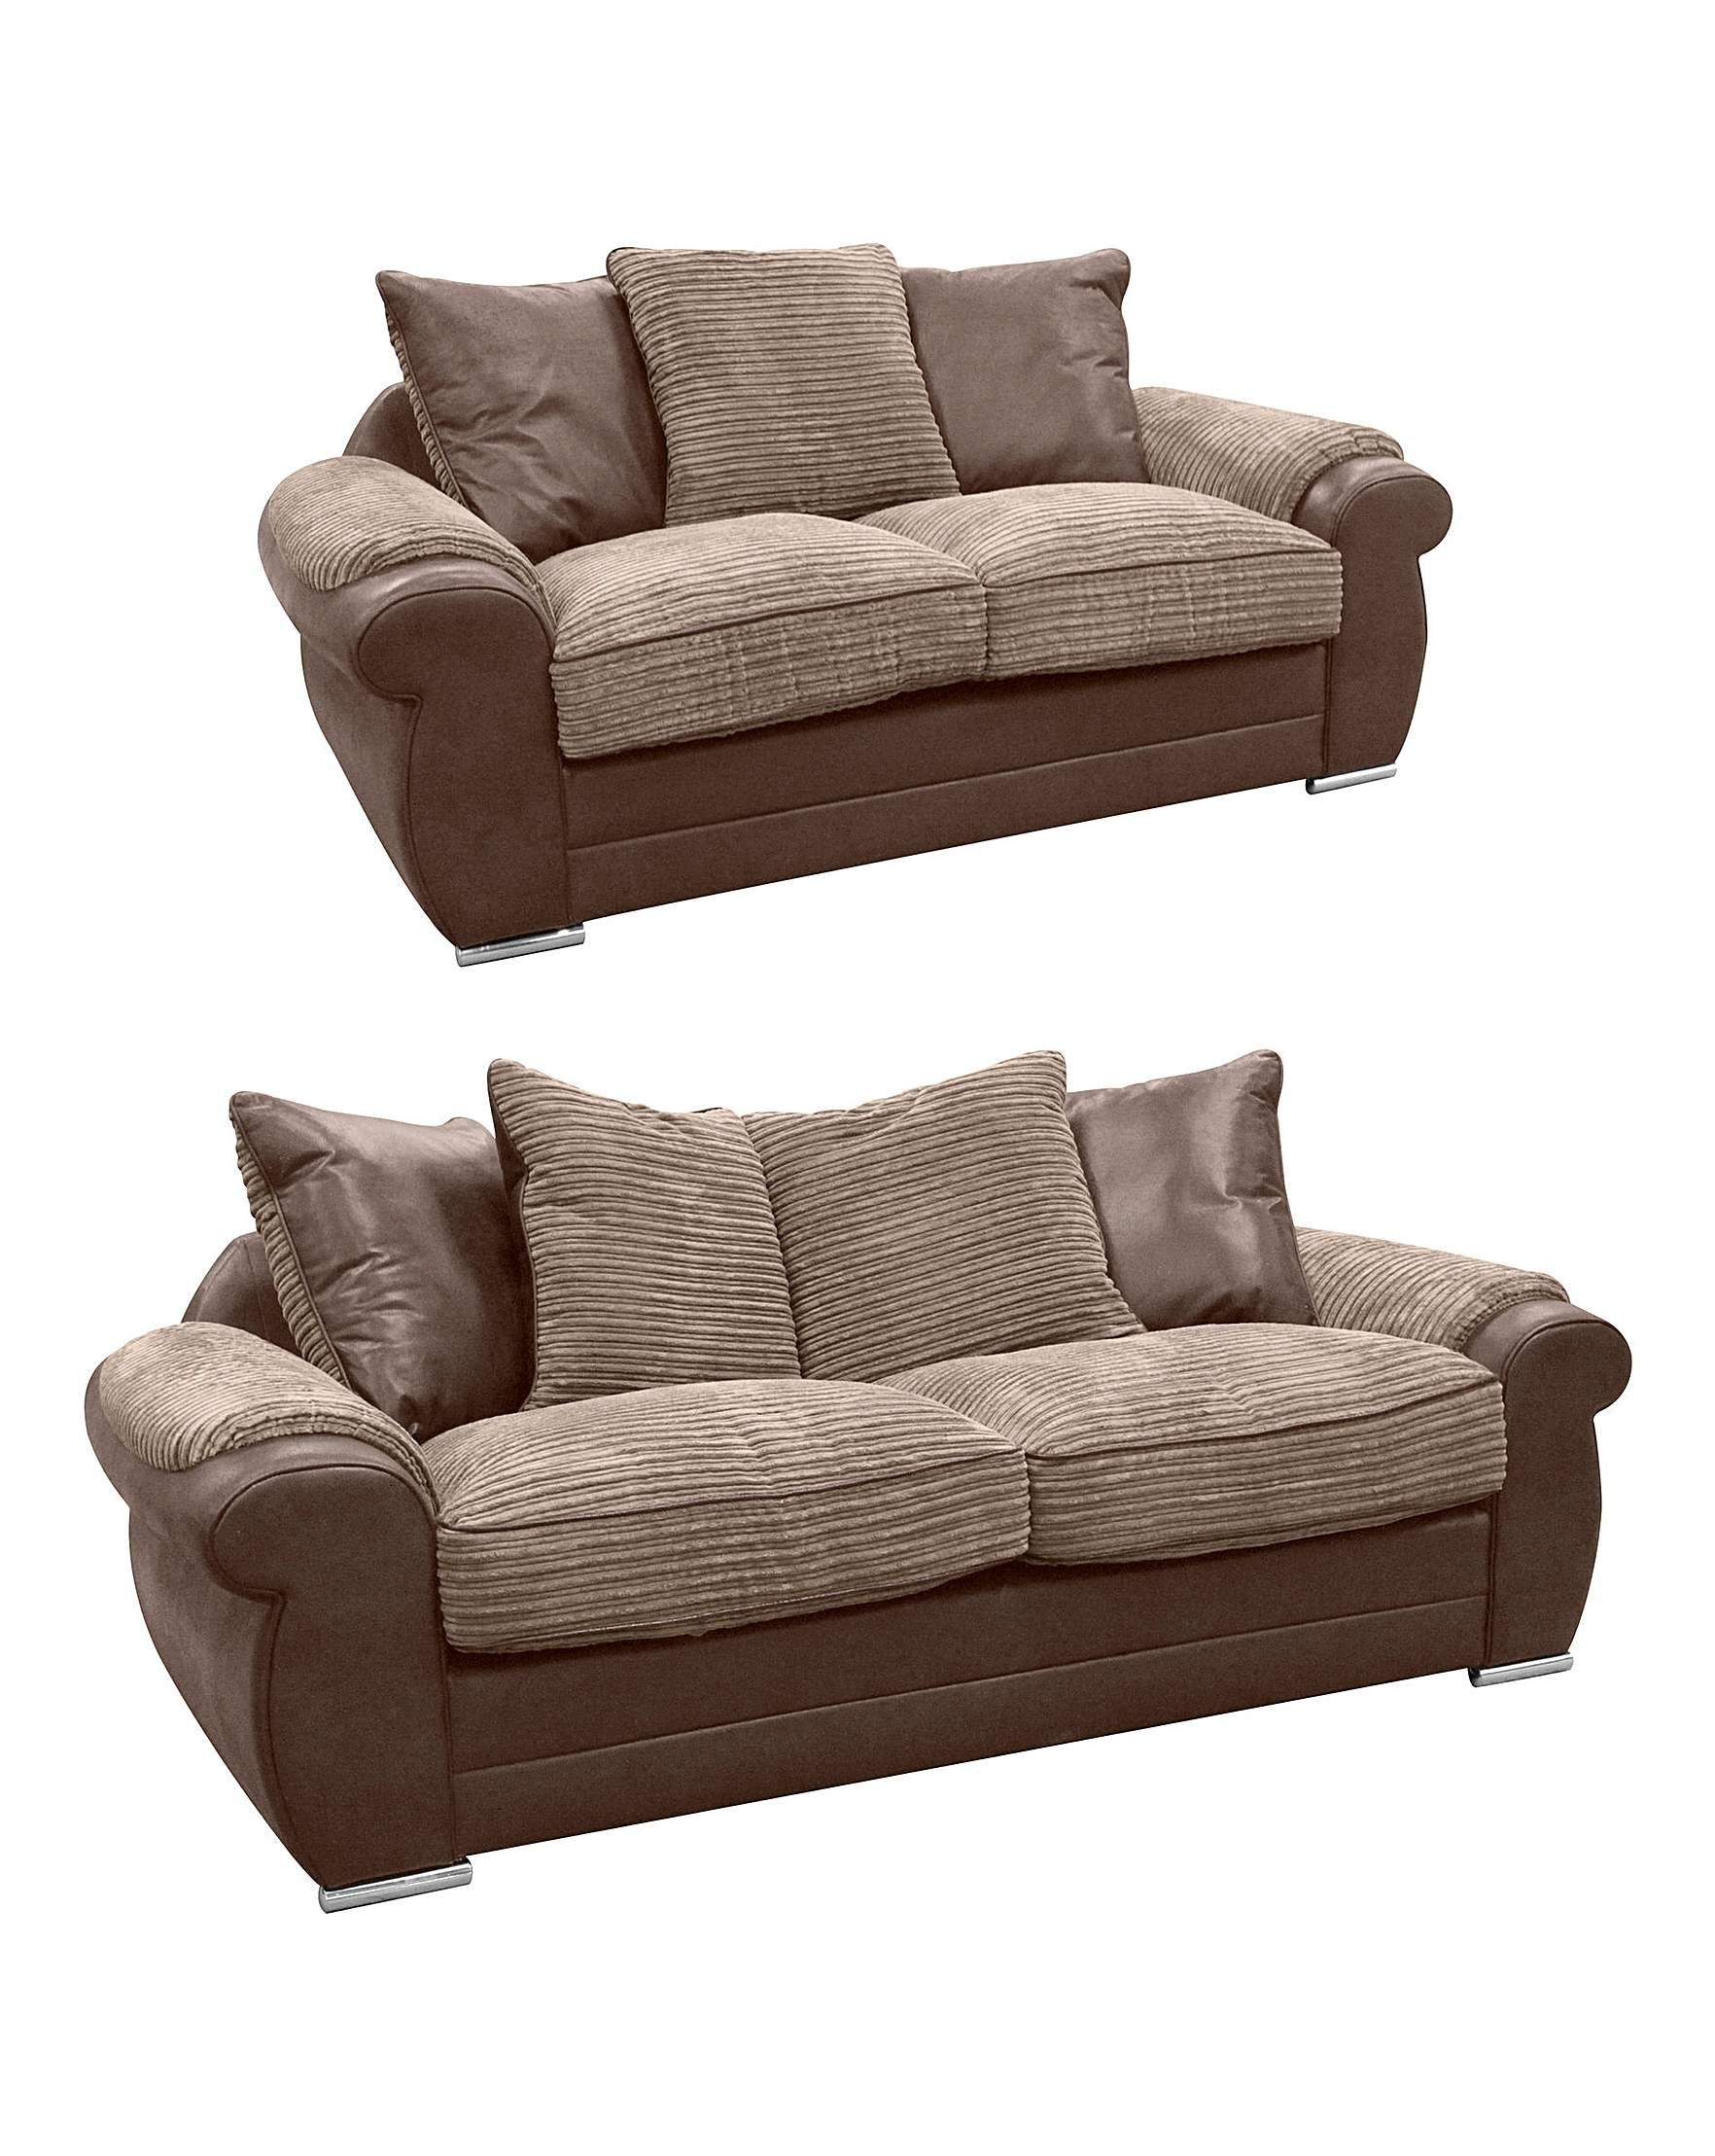 Adelaide Two And Three Seater Sofa | Jacamo